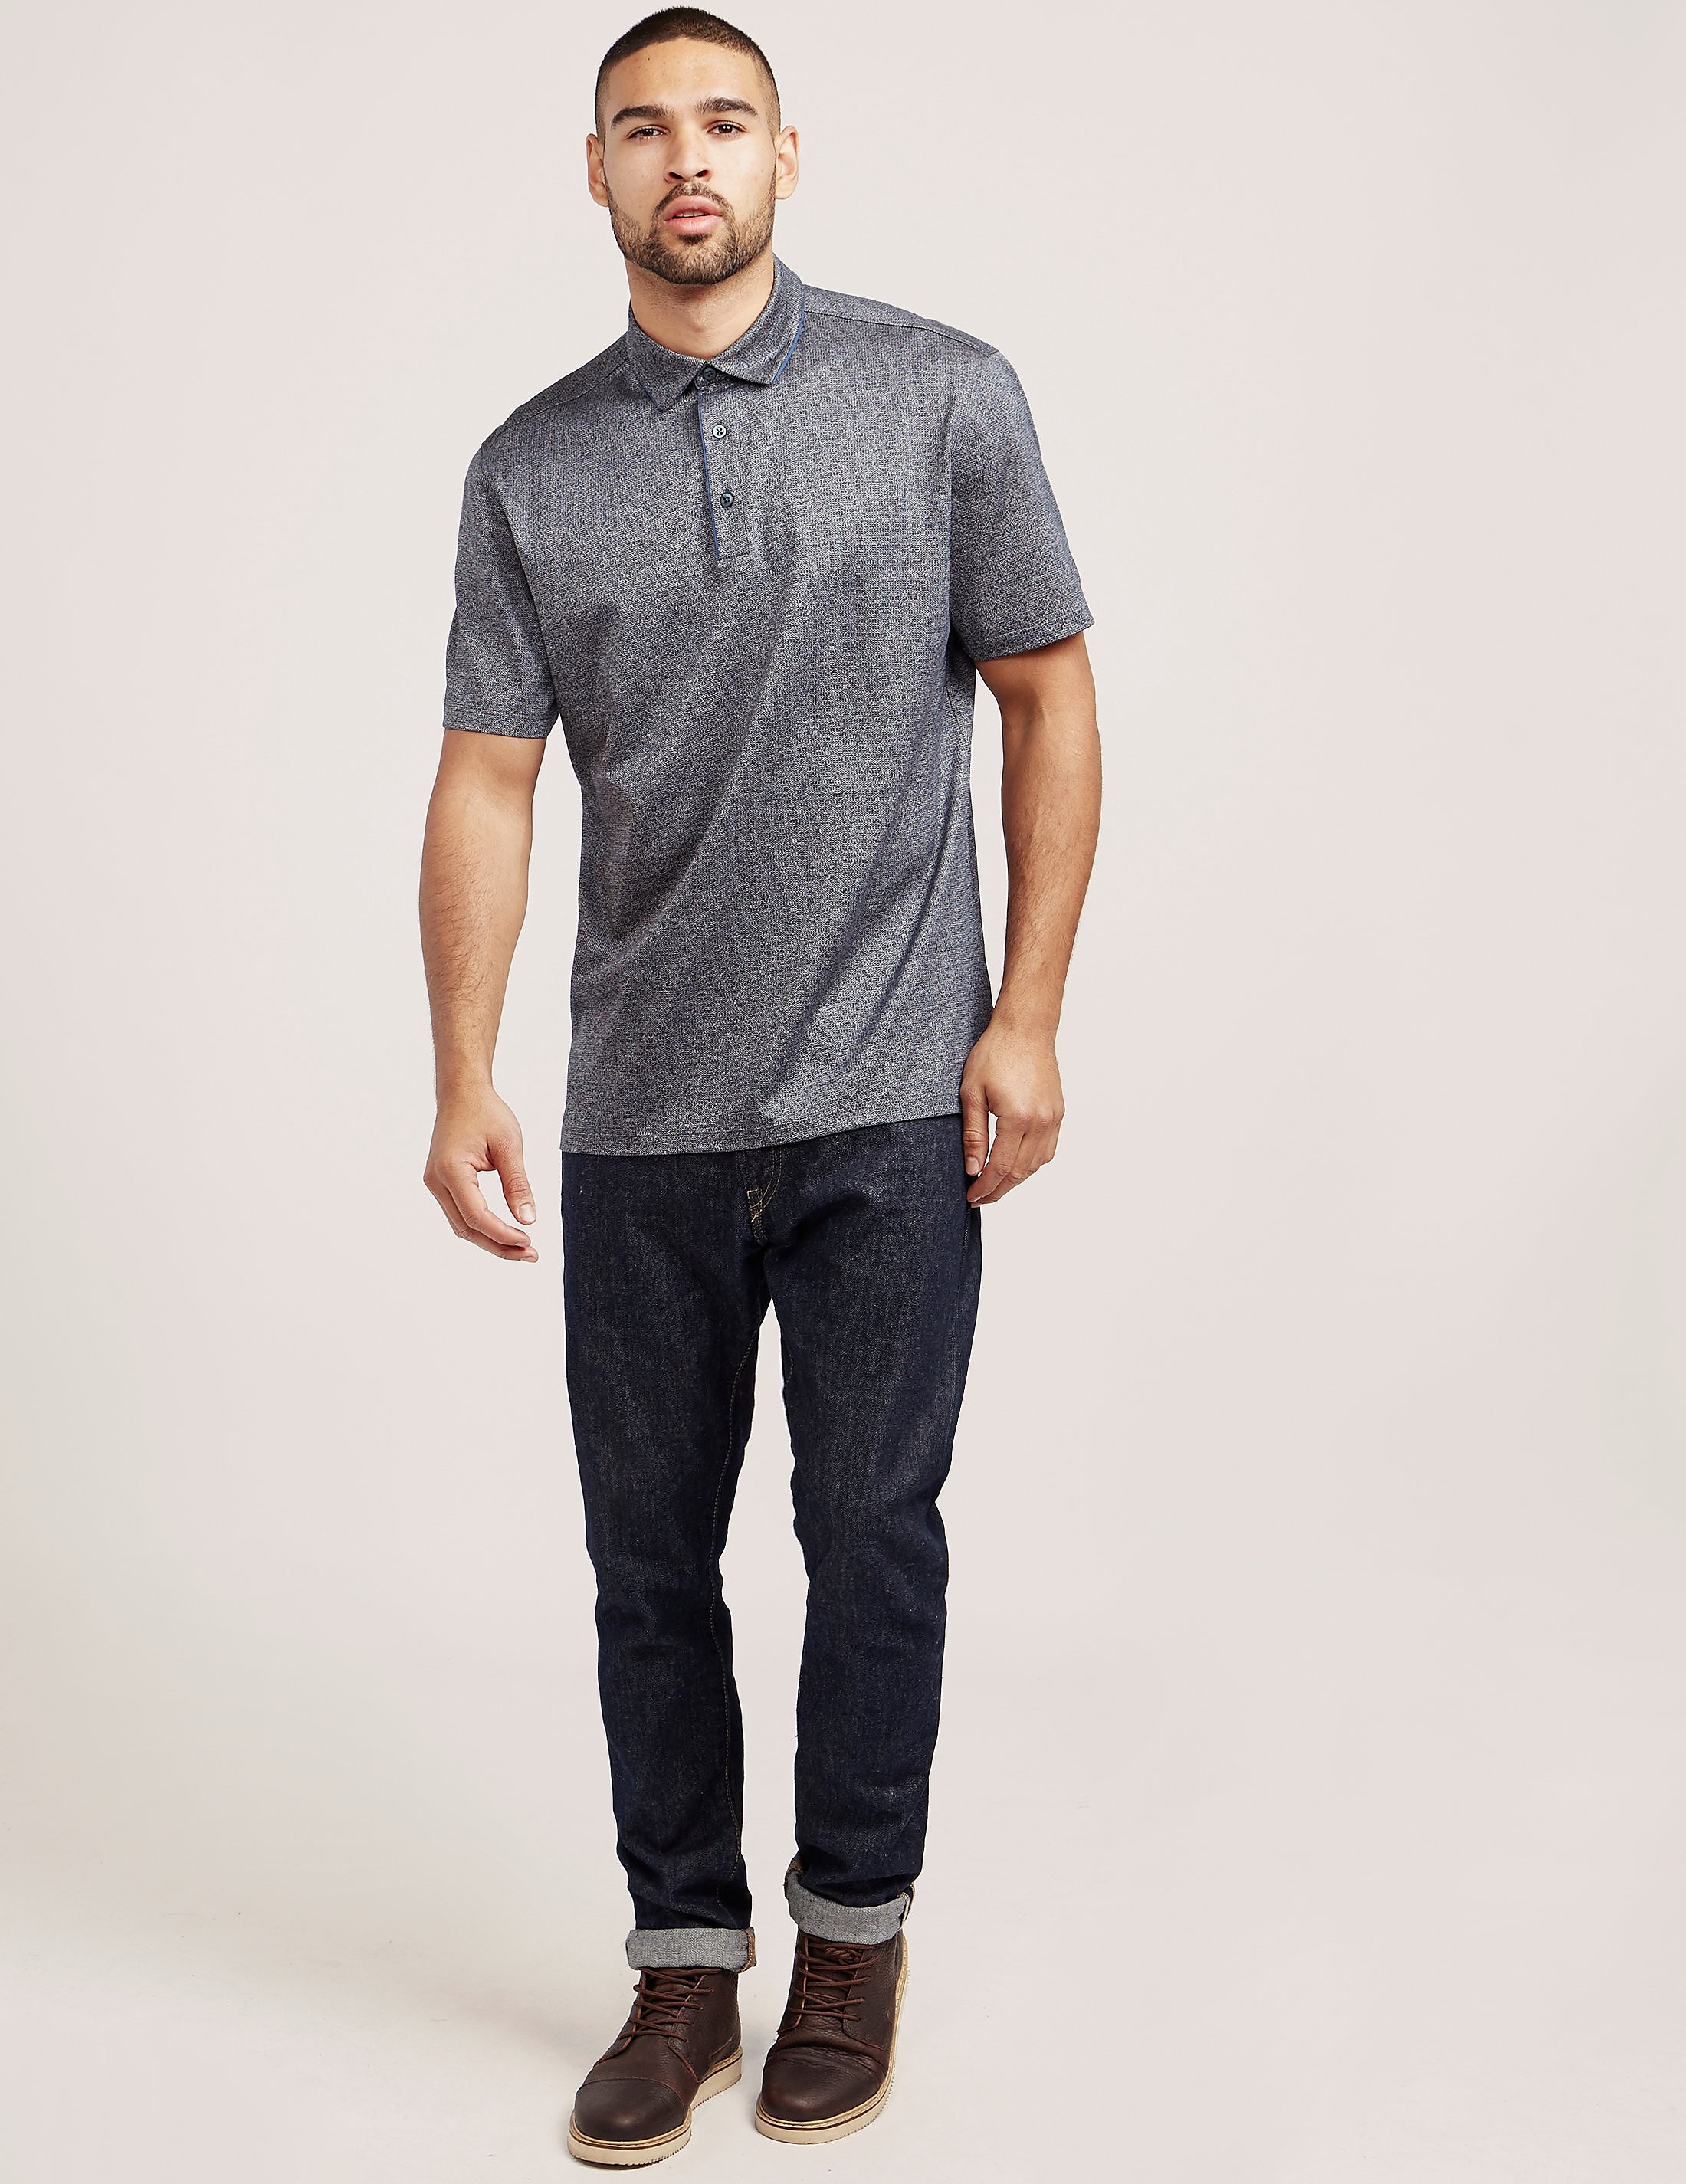 Z Zegna Jacquard Short Sleeve Polo